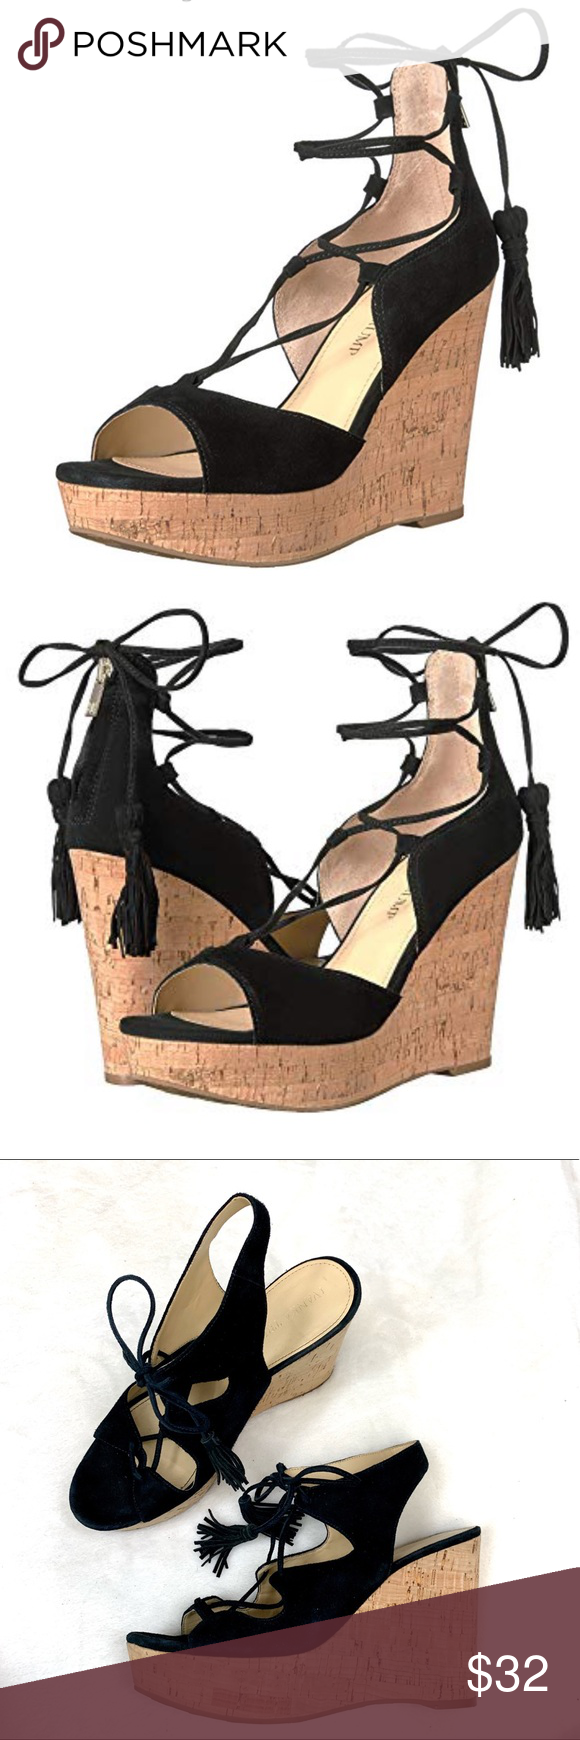 2d8602698 Ivanka Trump Black Wedge Suede Tassel Sandals Ivanka Trump Black Wedge  Suede Tassel Sandals Womens size 7.5, very good condition, no flaws.